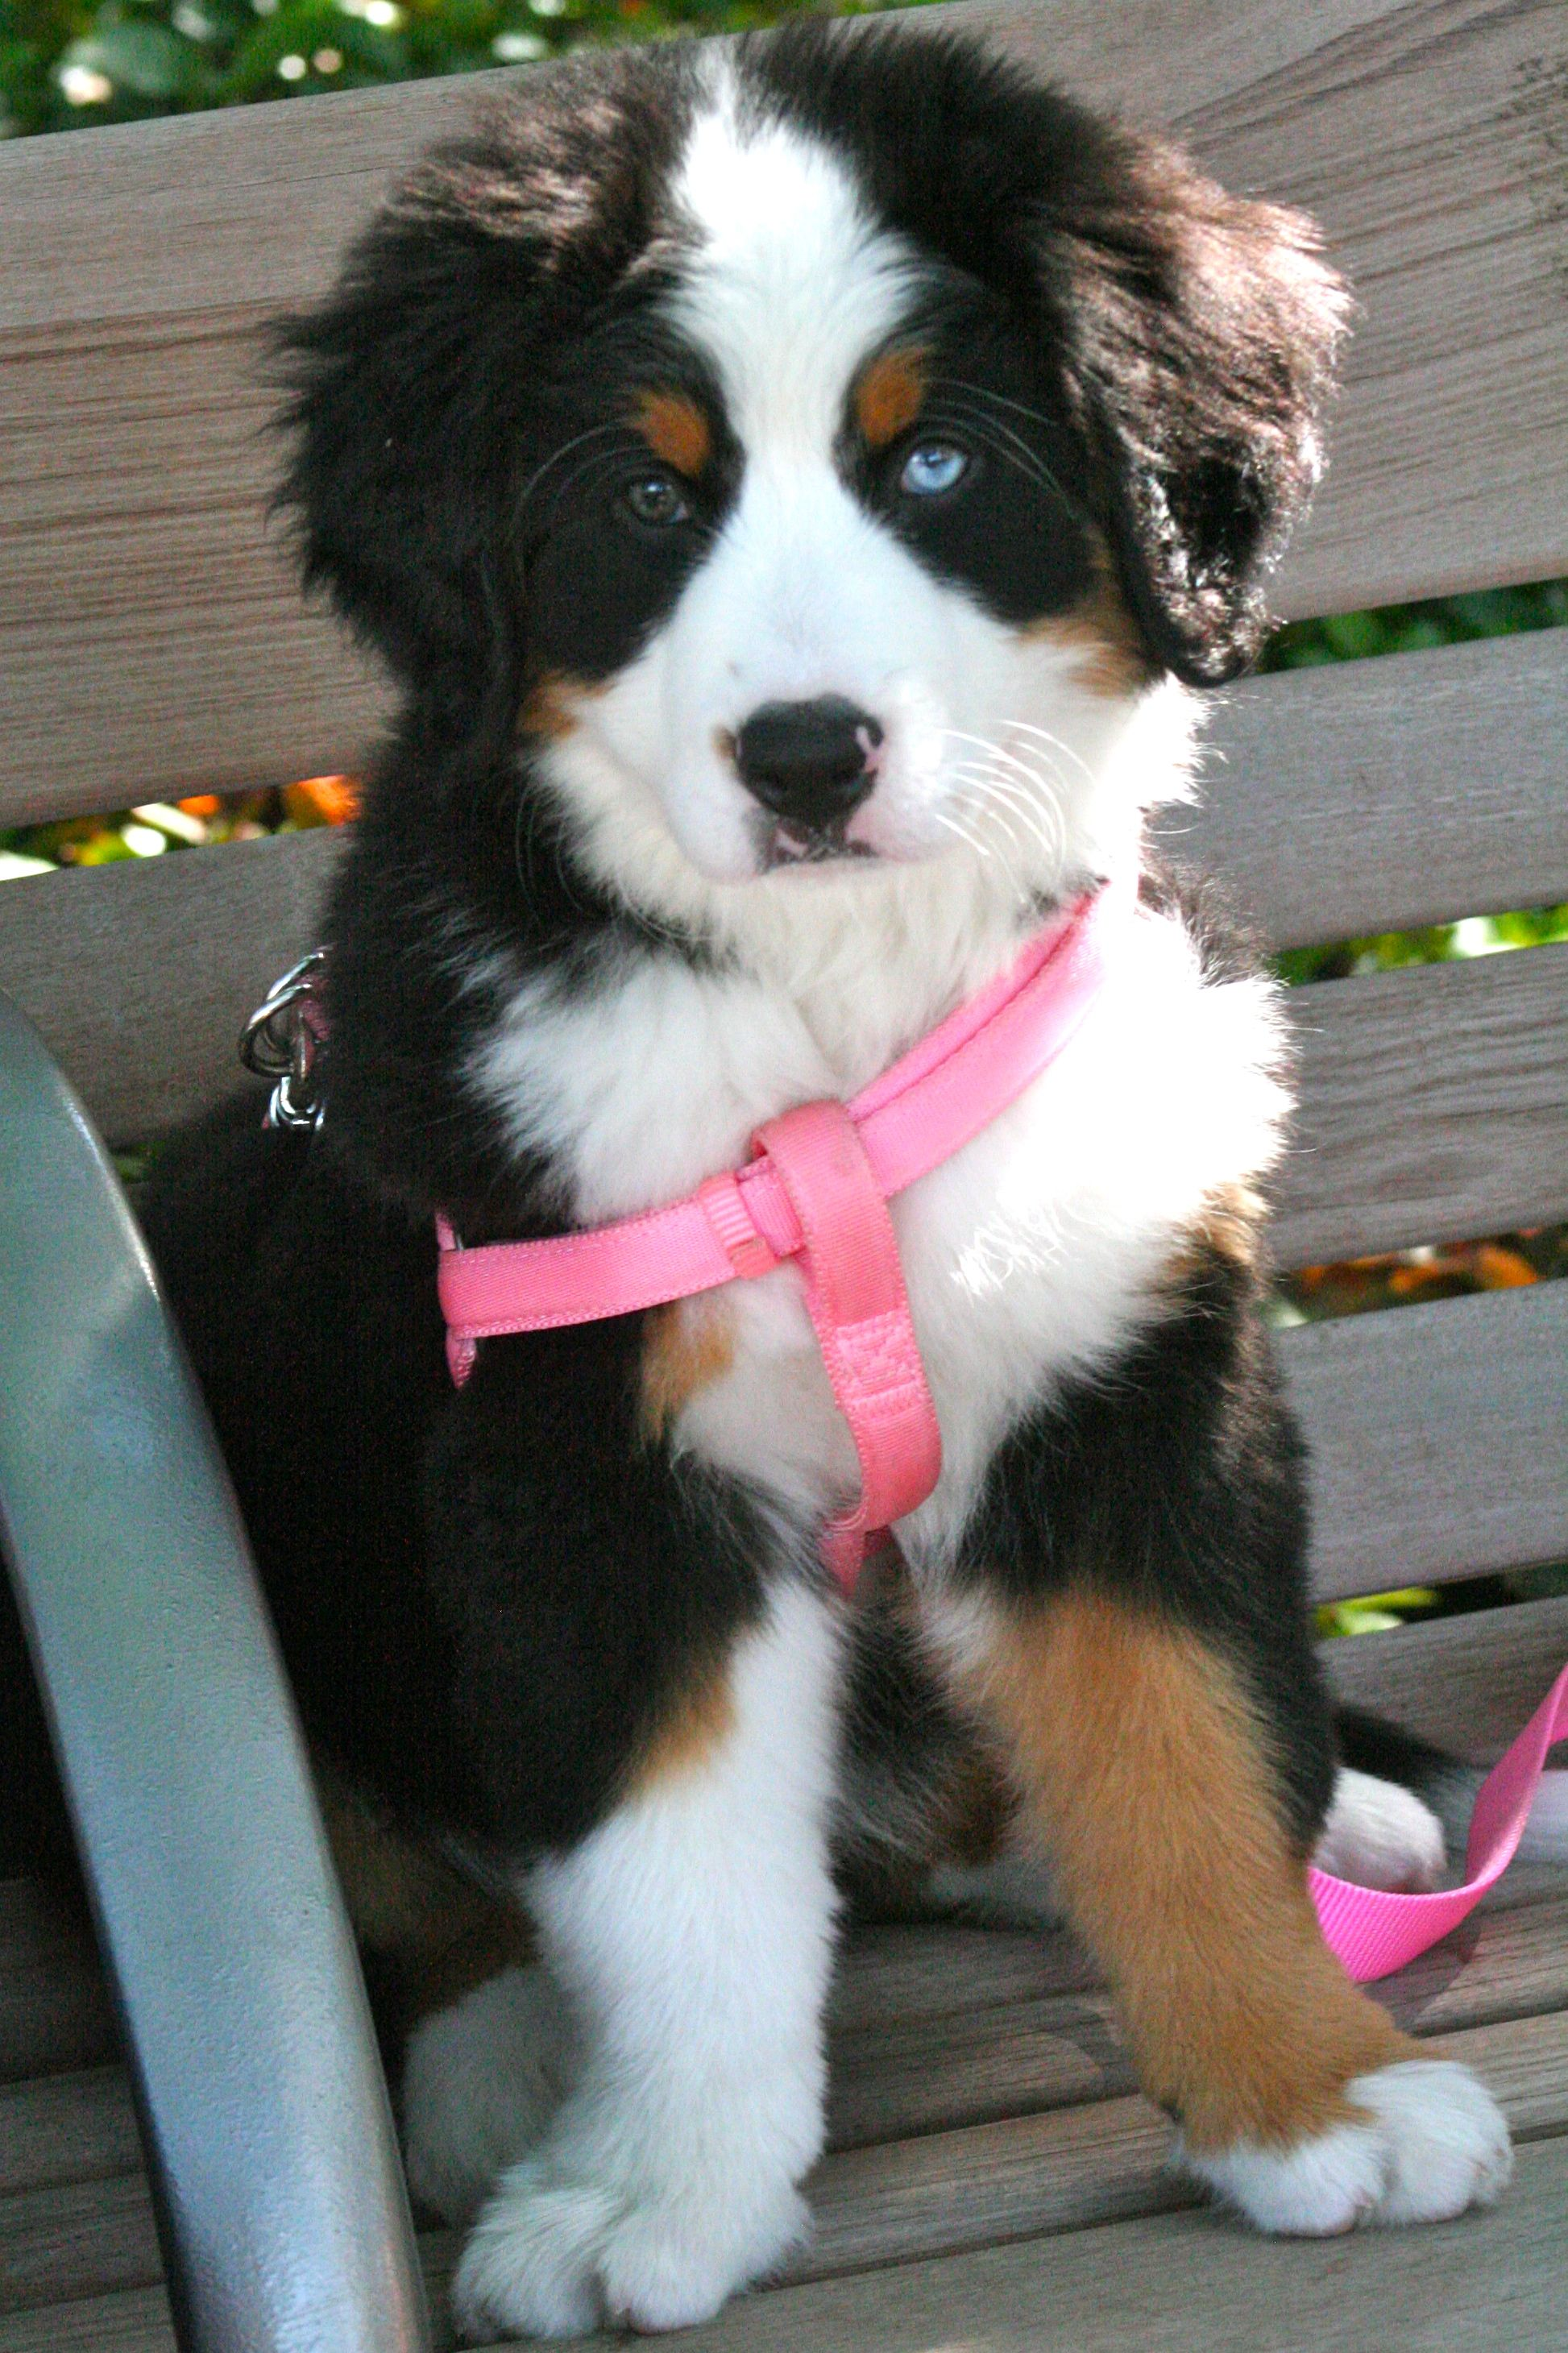 Beautiful Bernese Mountain Dog Chubby Adorable Dog - d8cc33c34761d4a37bd7d847b4c7a259  2018_227867  .jpg